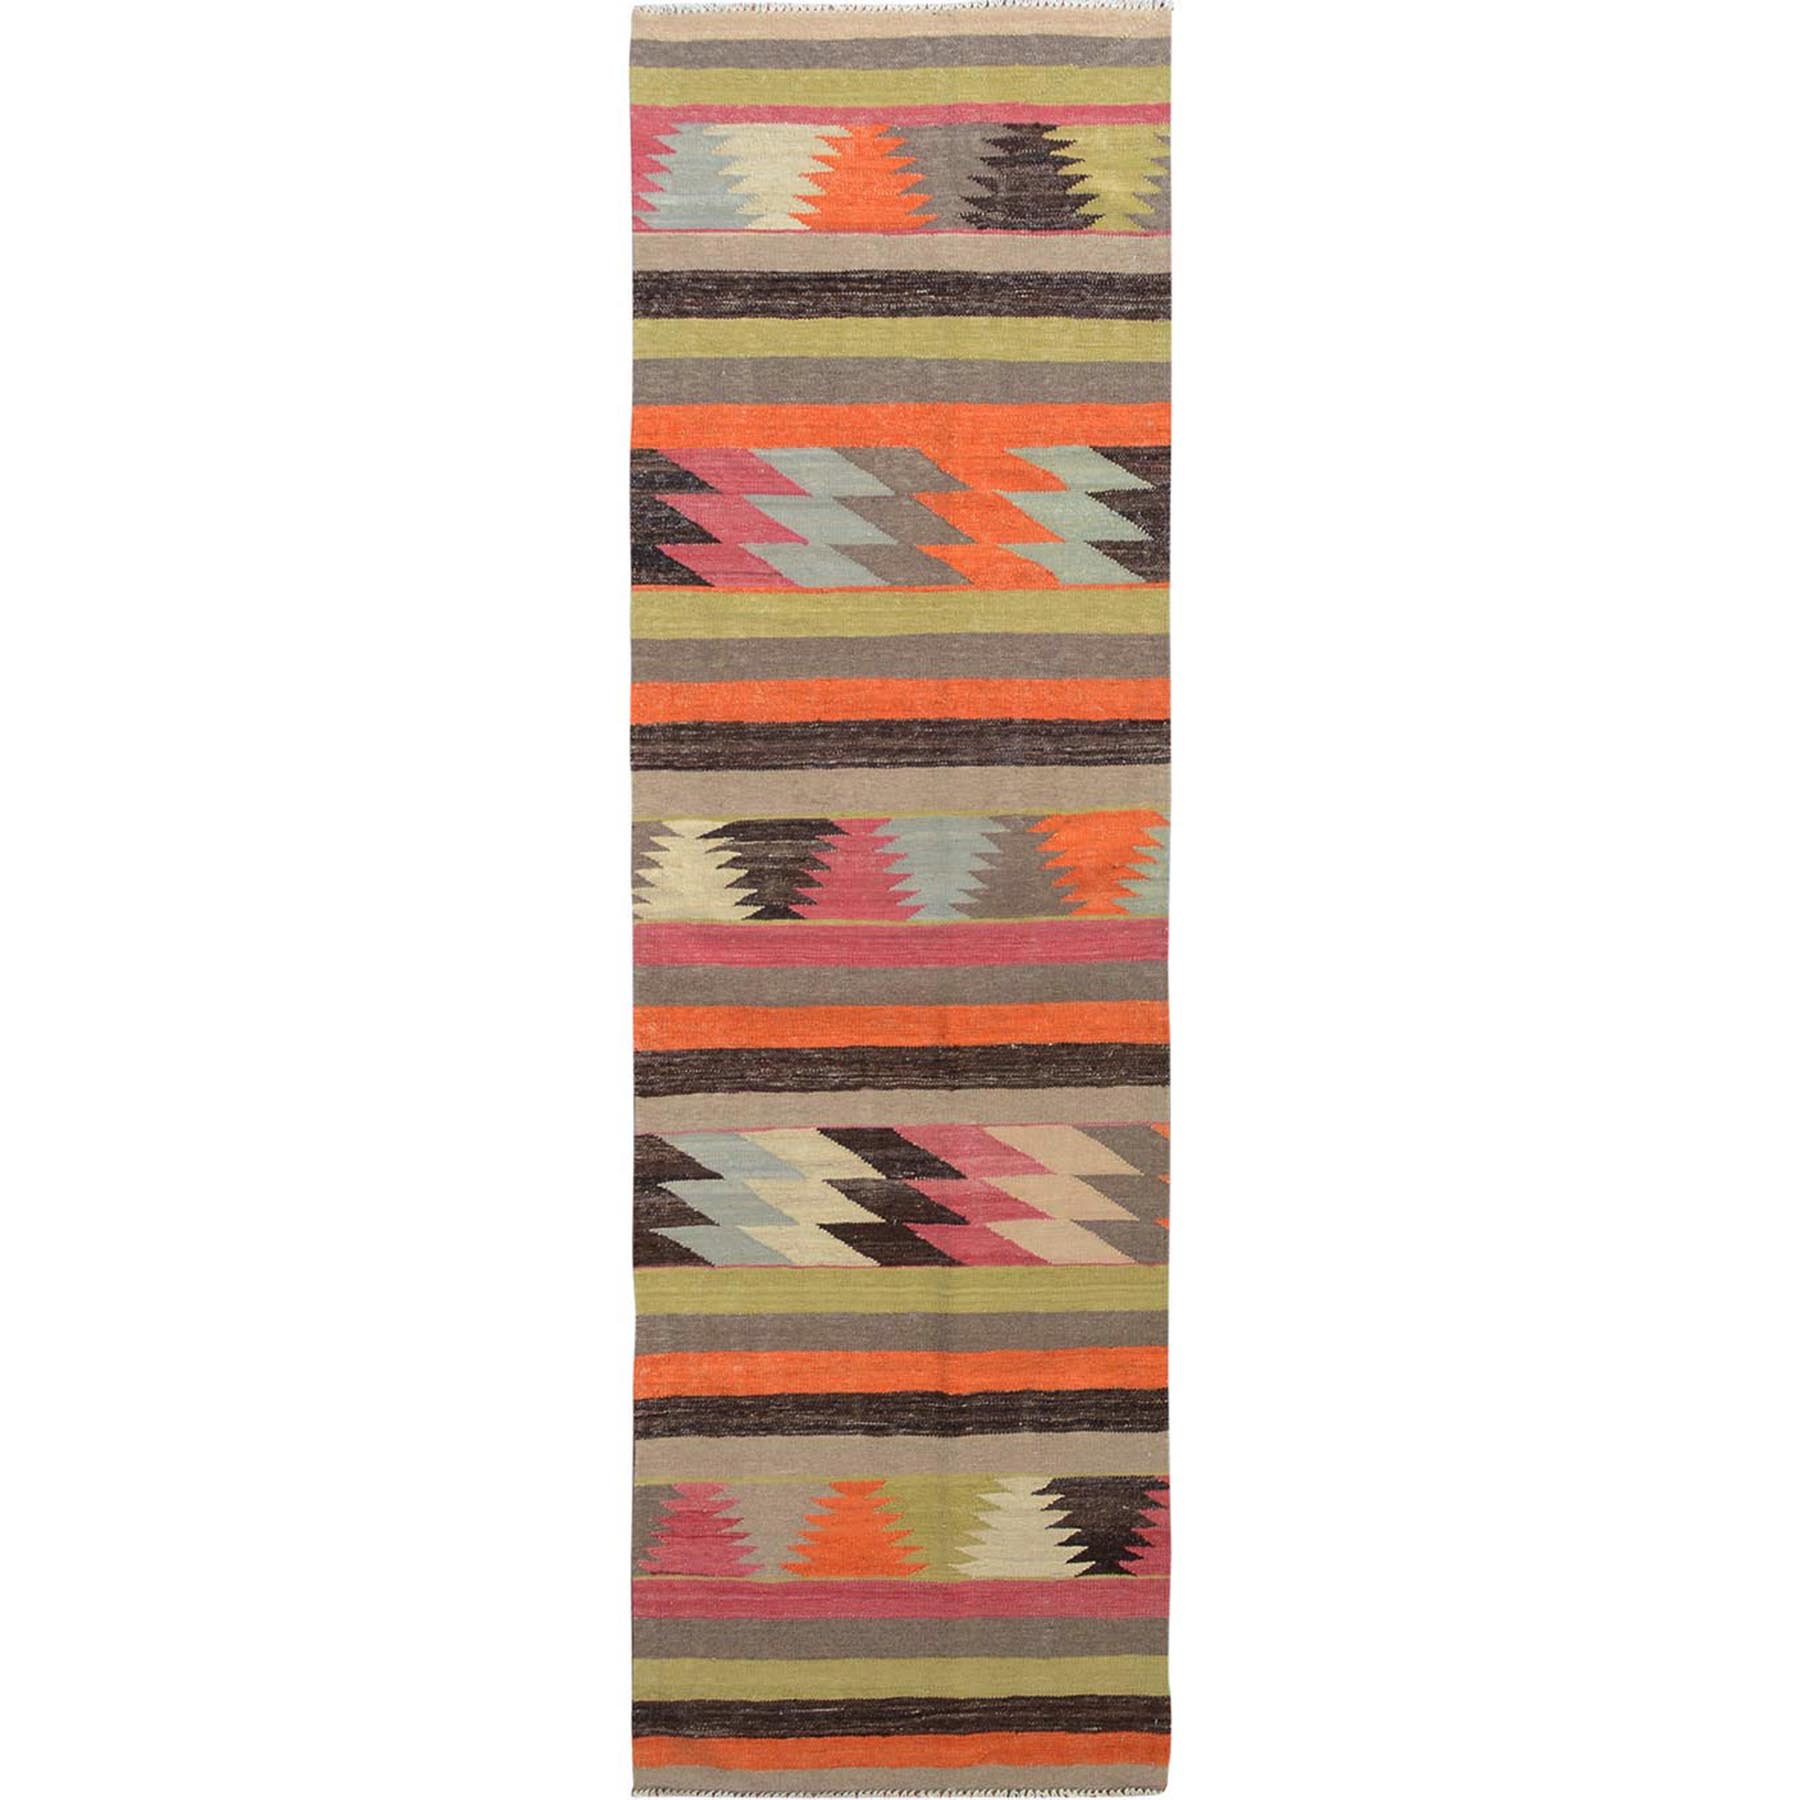 "2'7""x9'5"" Colorful Afghan Kilim Reversible Pure Wool Hand Woven Runner Oriental Rug"